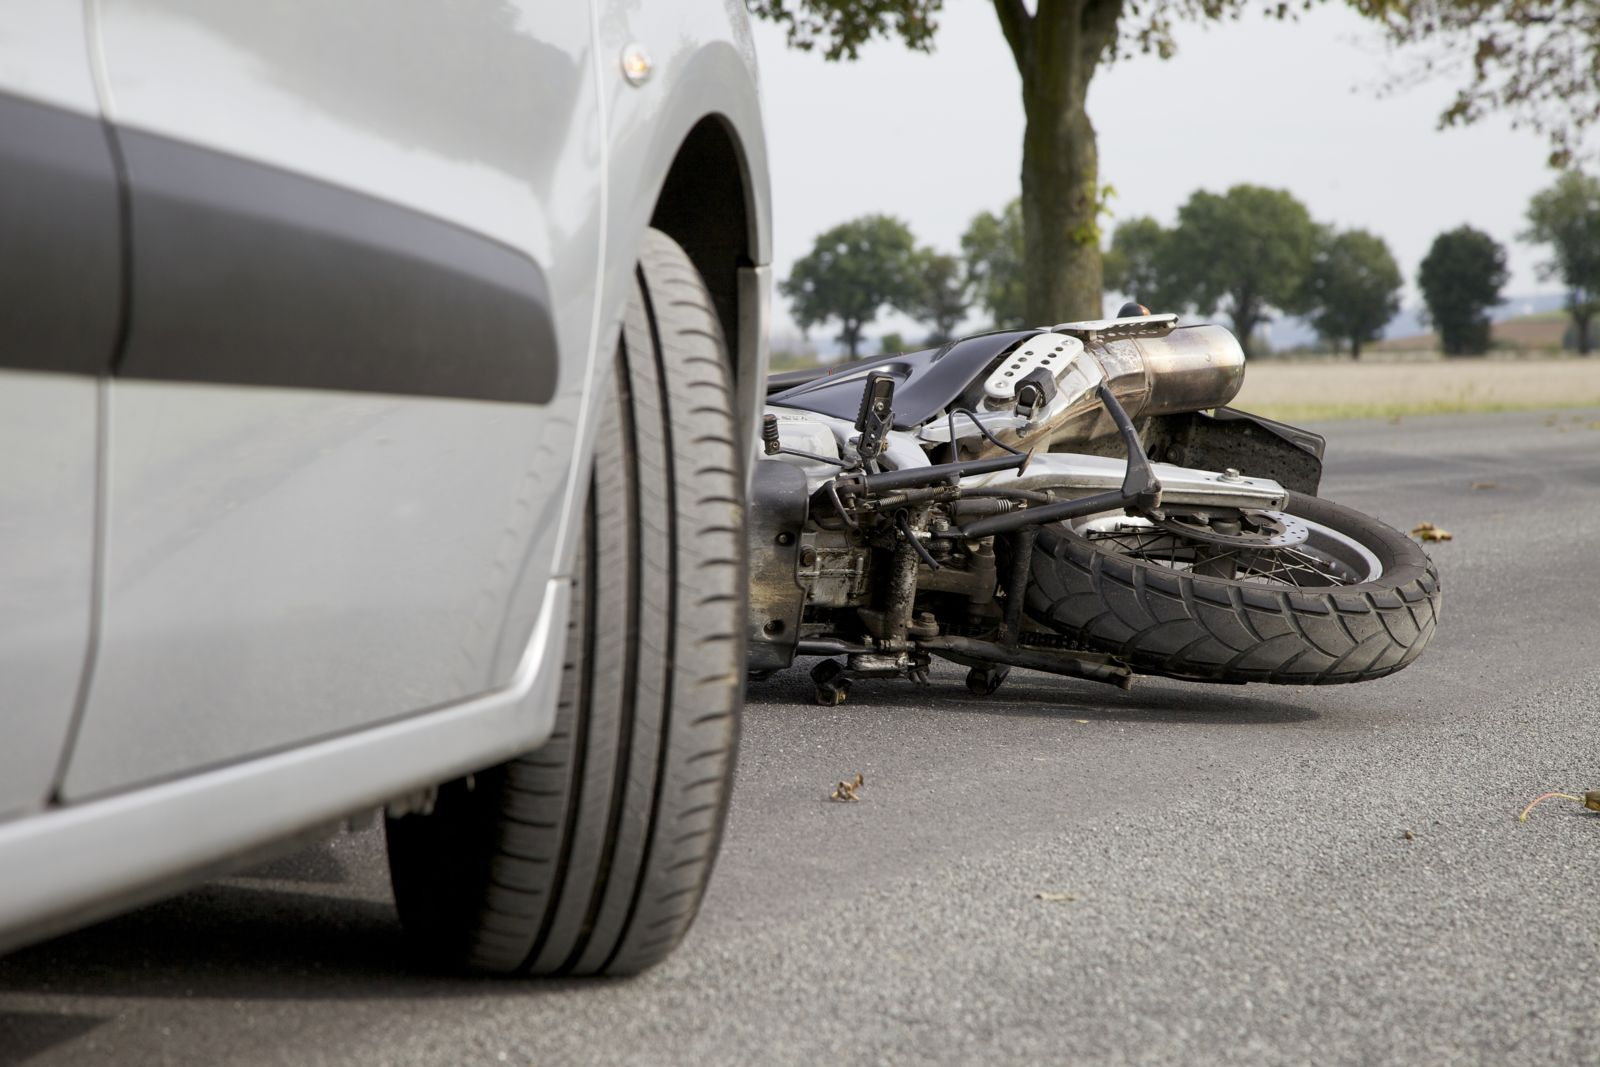 Myrtle Beach Motorcycle Accident Lawyer The Derrick Law Firm